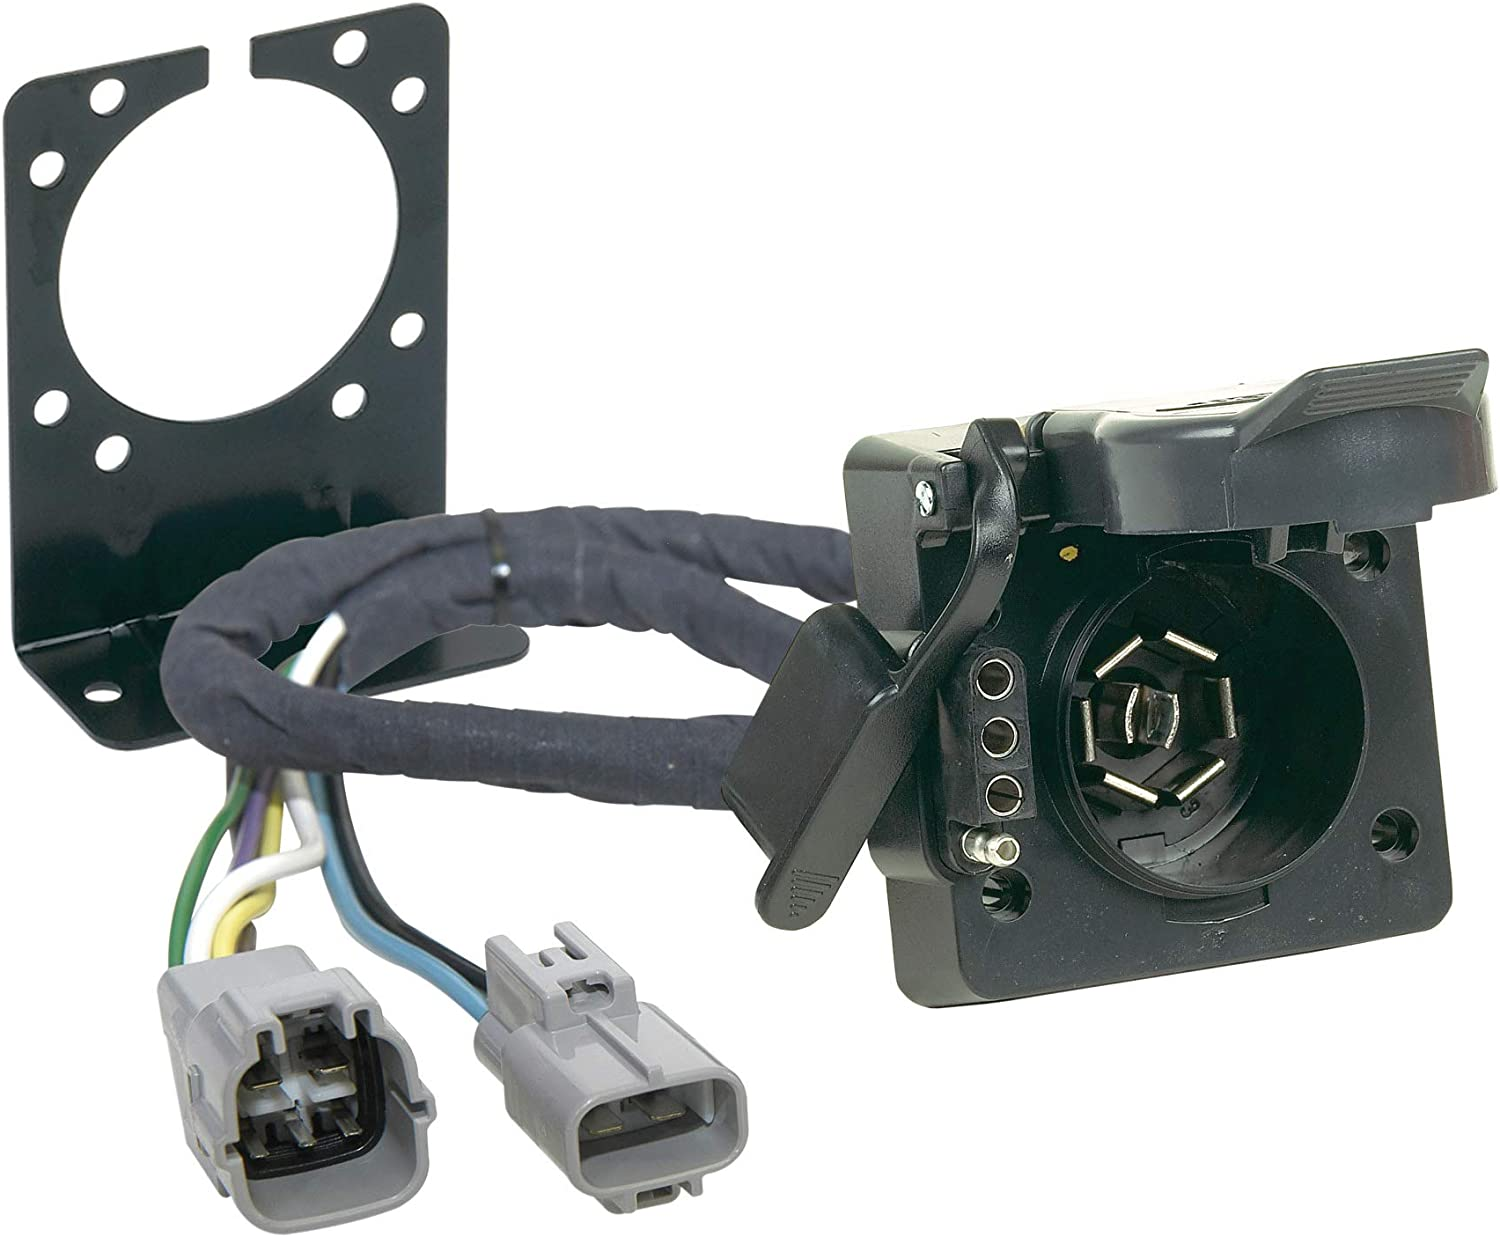 2008 tundra wiring harness amazon com hopkins 43395 plug in simple vehicle to trailer wiring  hopkins 43395 plug in simple vehicle